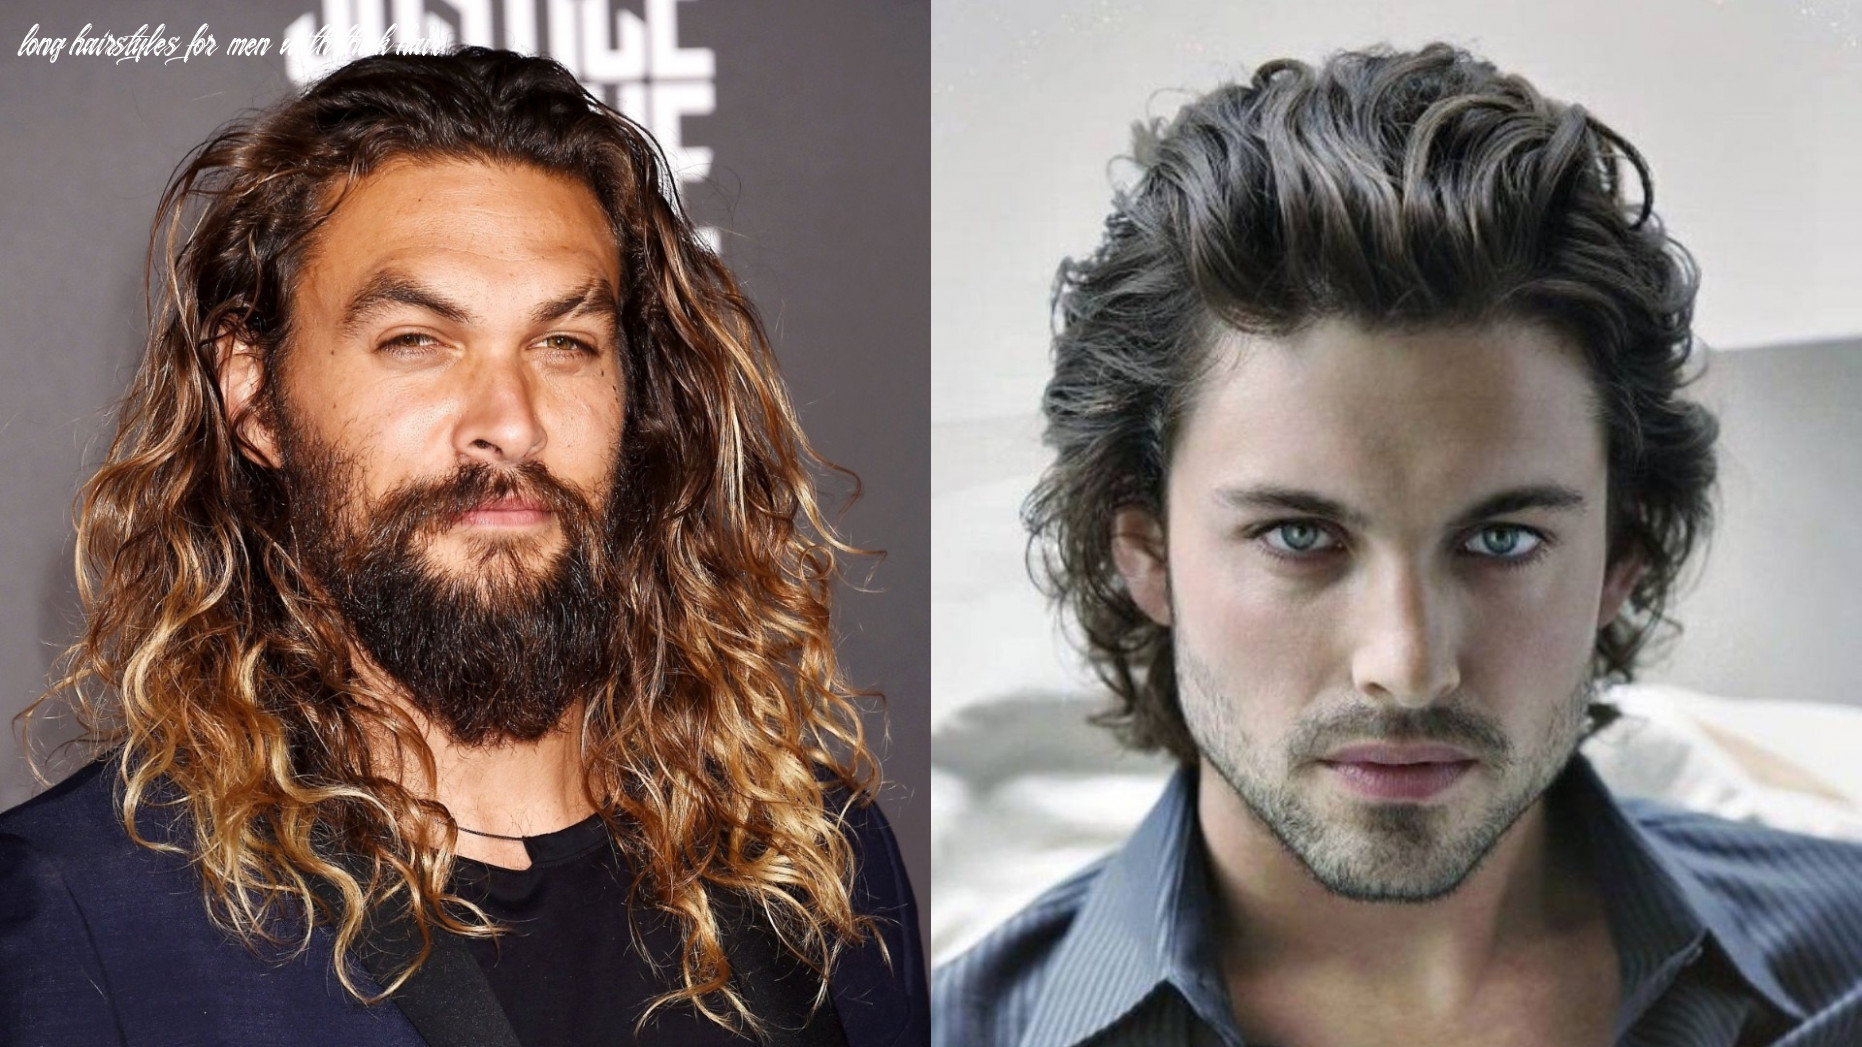 12 ultra stylish long hairstyles for boys haircuts & hairstyles 12 long hairstyles for men with thick hair